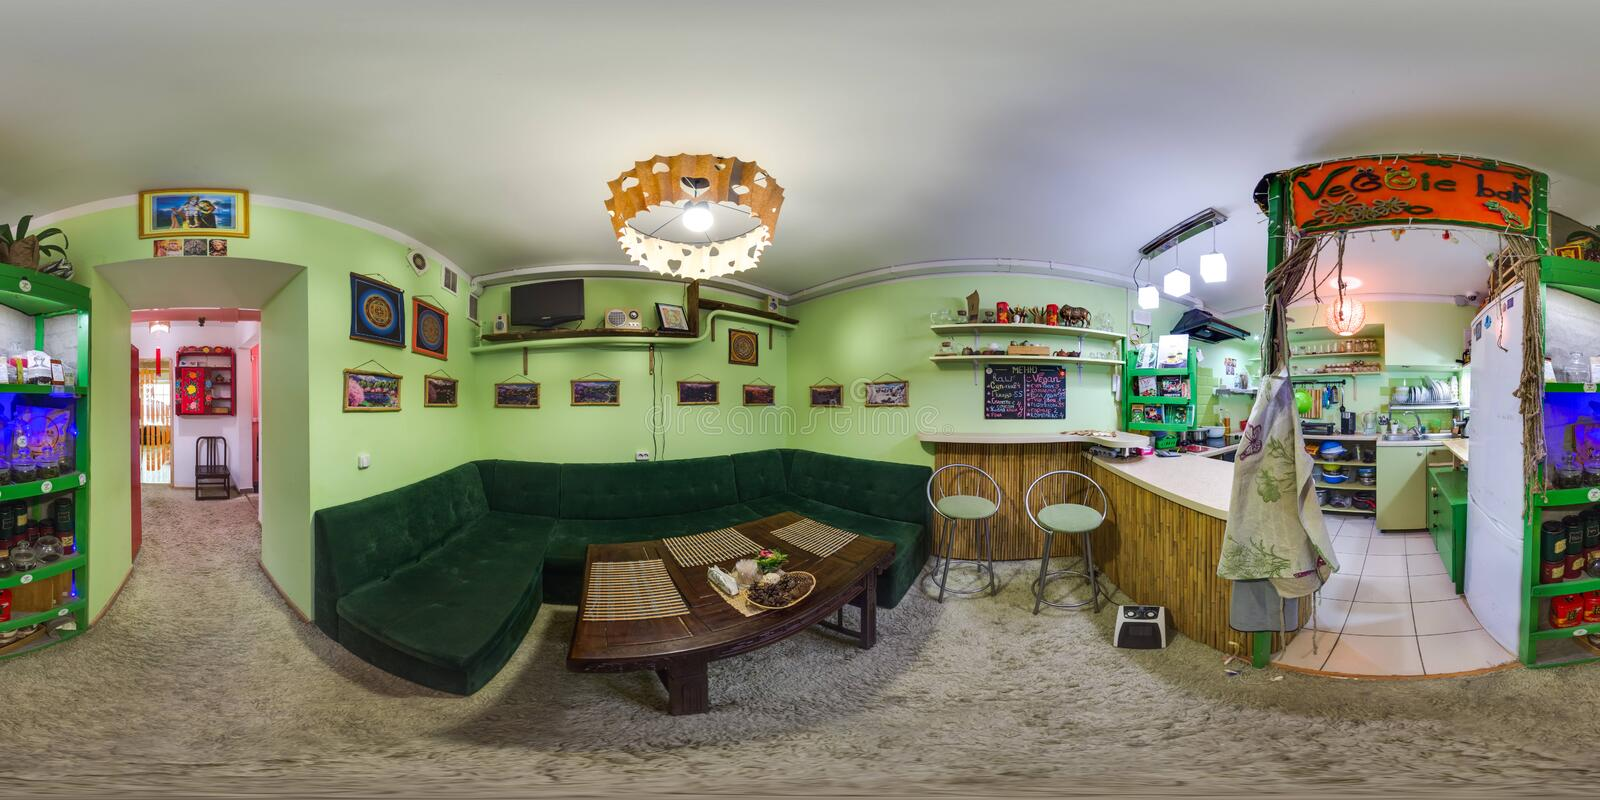 Interior of cafe in eco-style. 3D spherical panorama with 360 degree viewing angle. Ready for virtual reality in vr. Full equirect. Interior of cafe in eco-style royalty free stock images